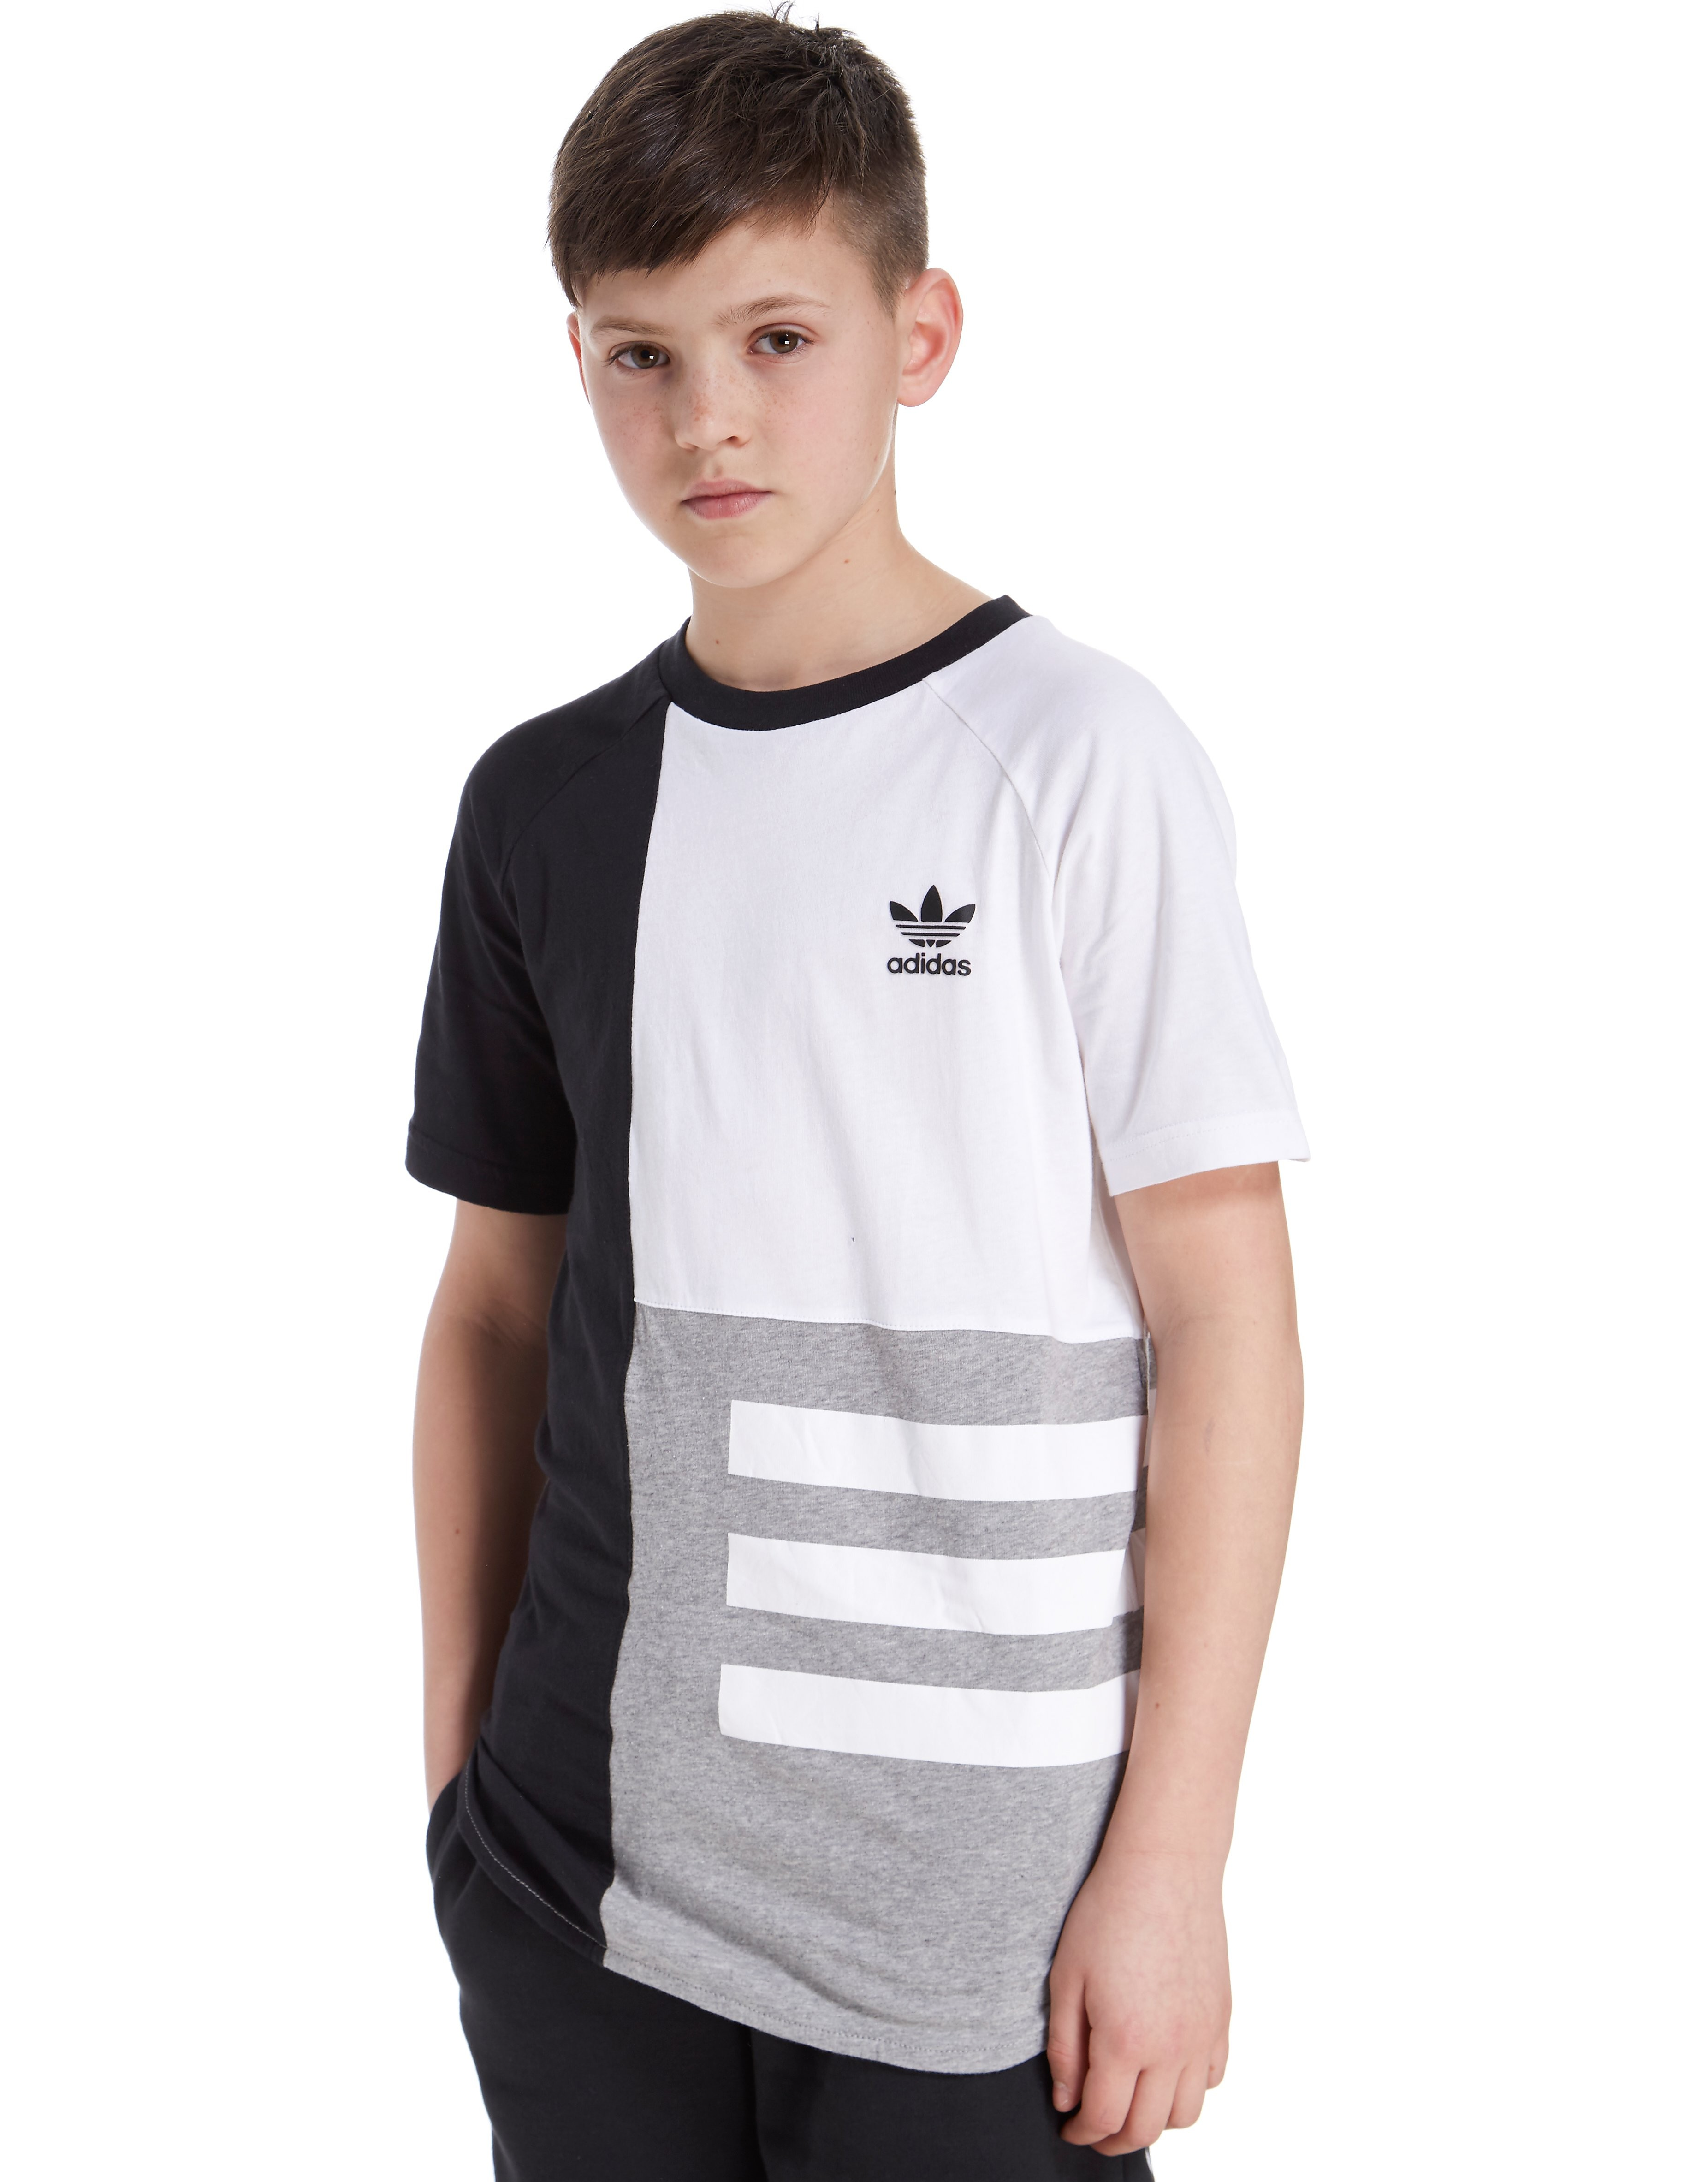 adidas Originals Urban T-Shirt Junior